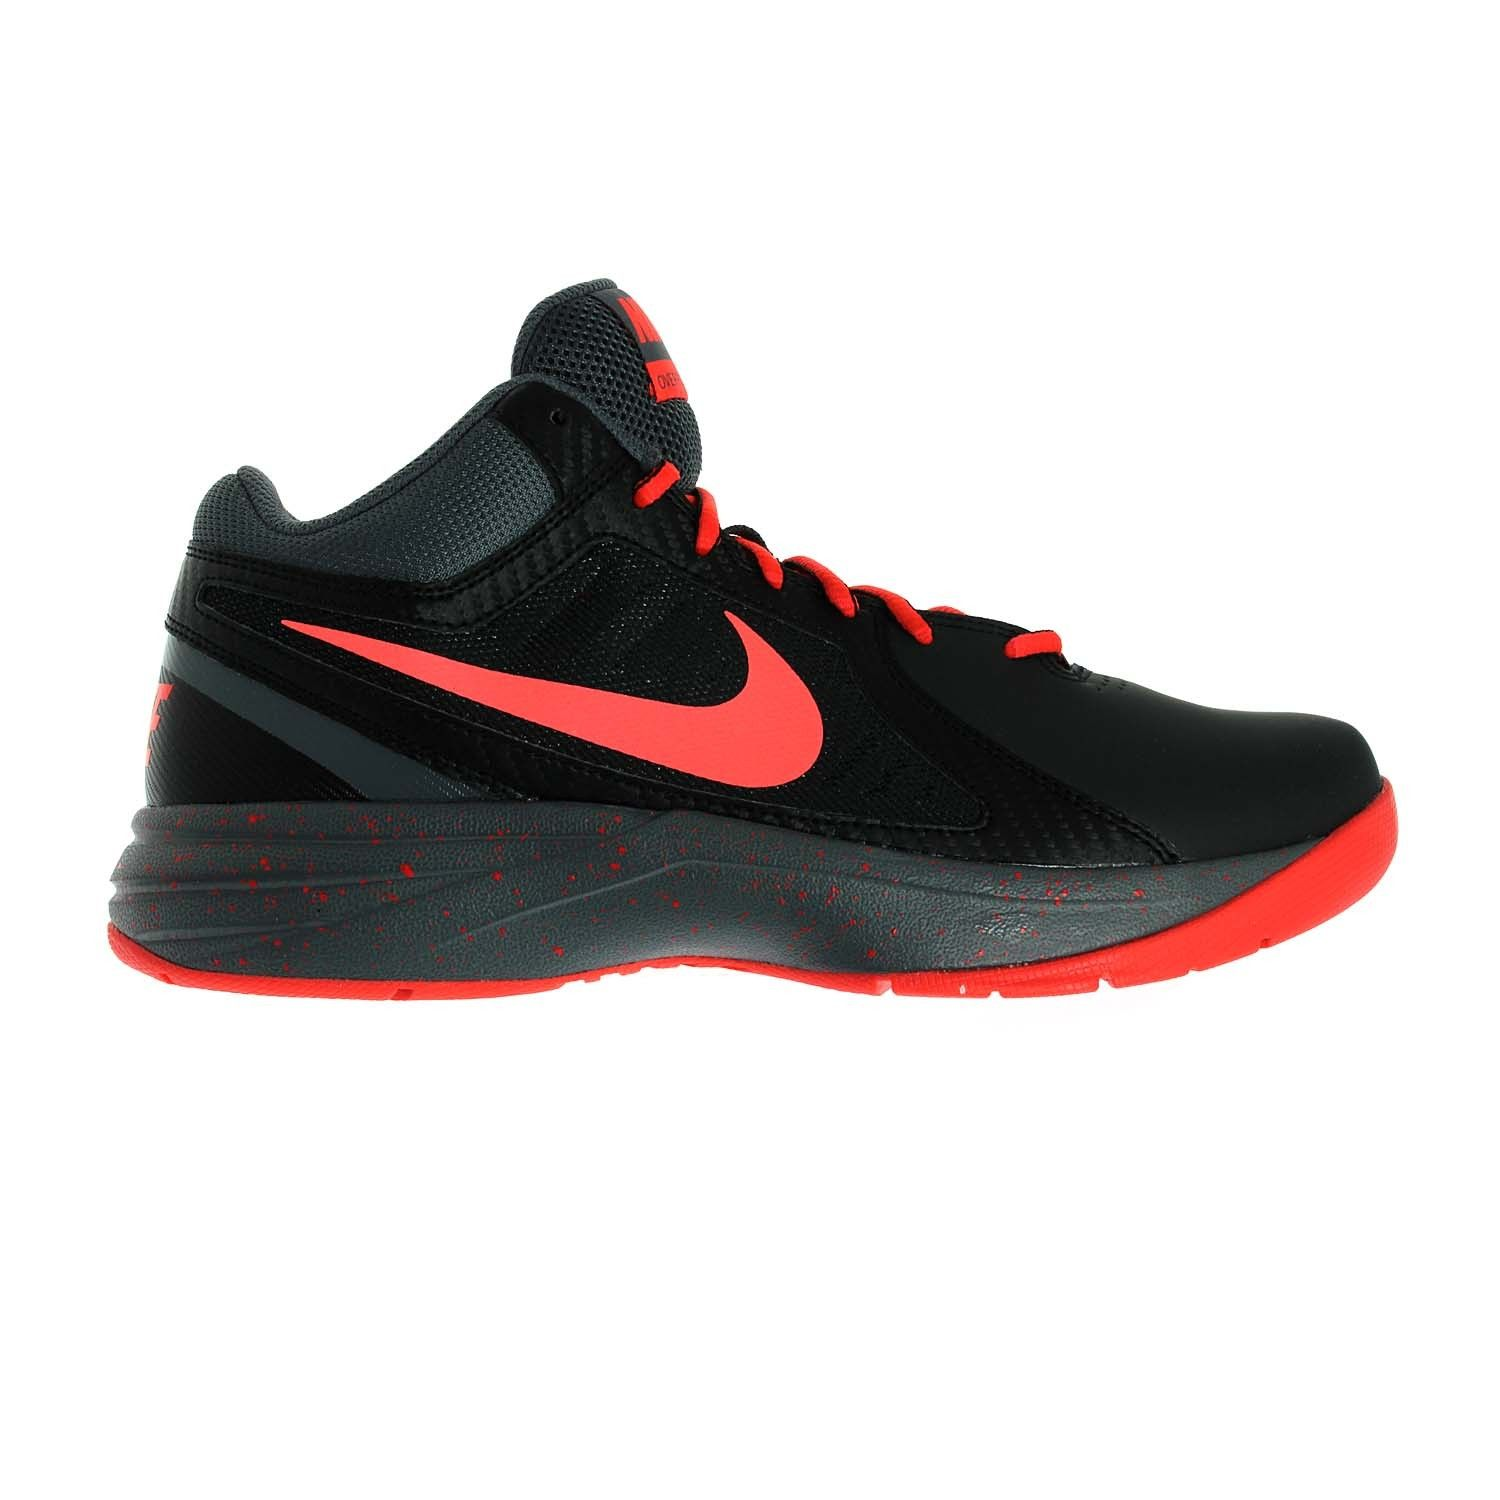 The Nike The Overplay VIII Men's Basketball Shoe is built with a leather  and synthetic upper and a soft, responsive midsole for can't-miss style and  ...